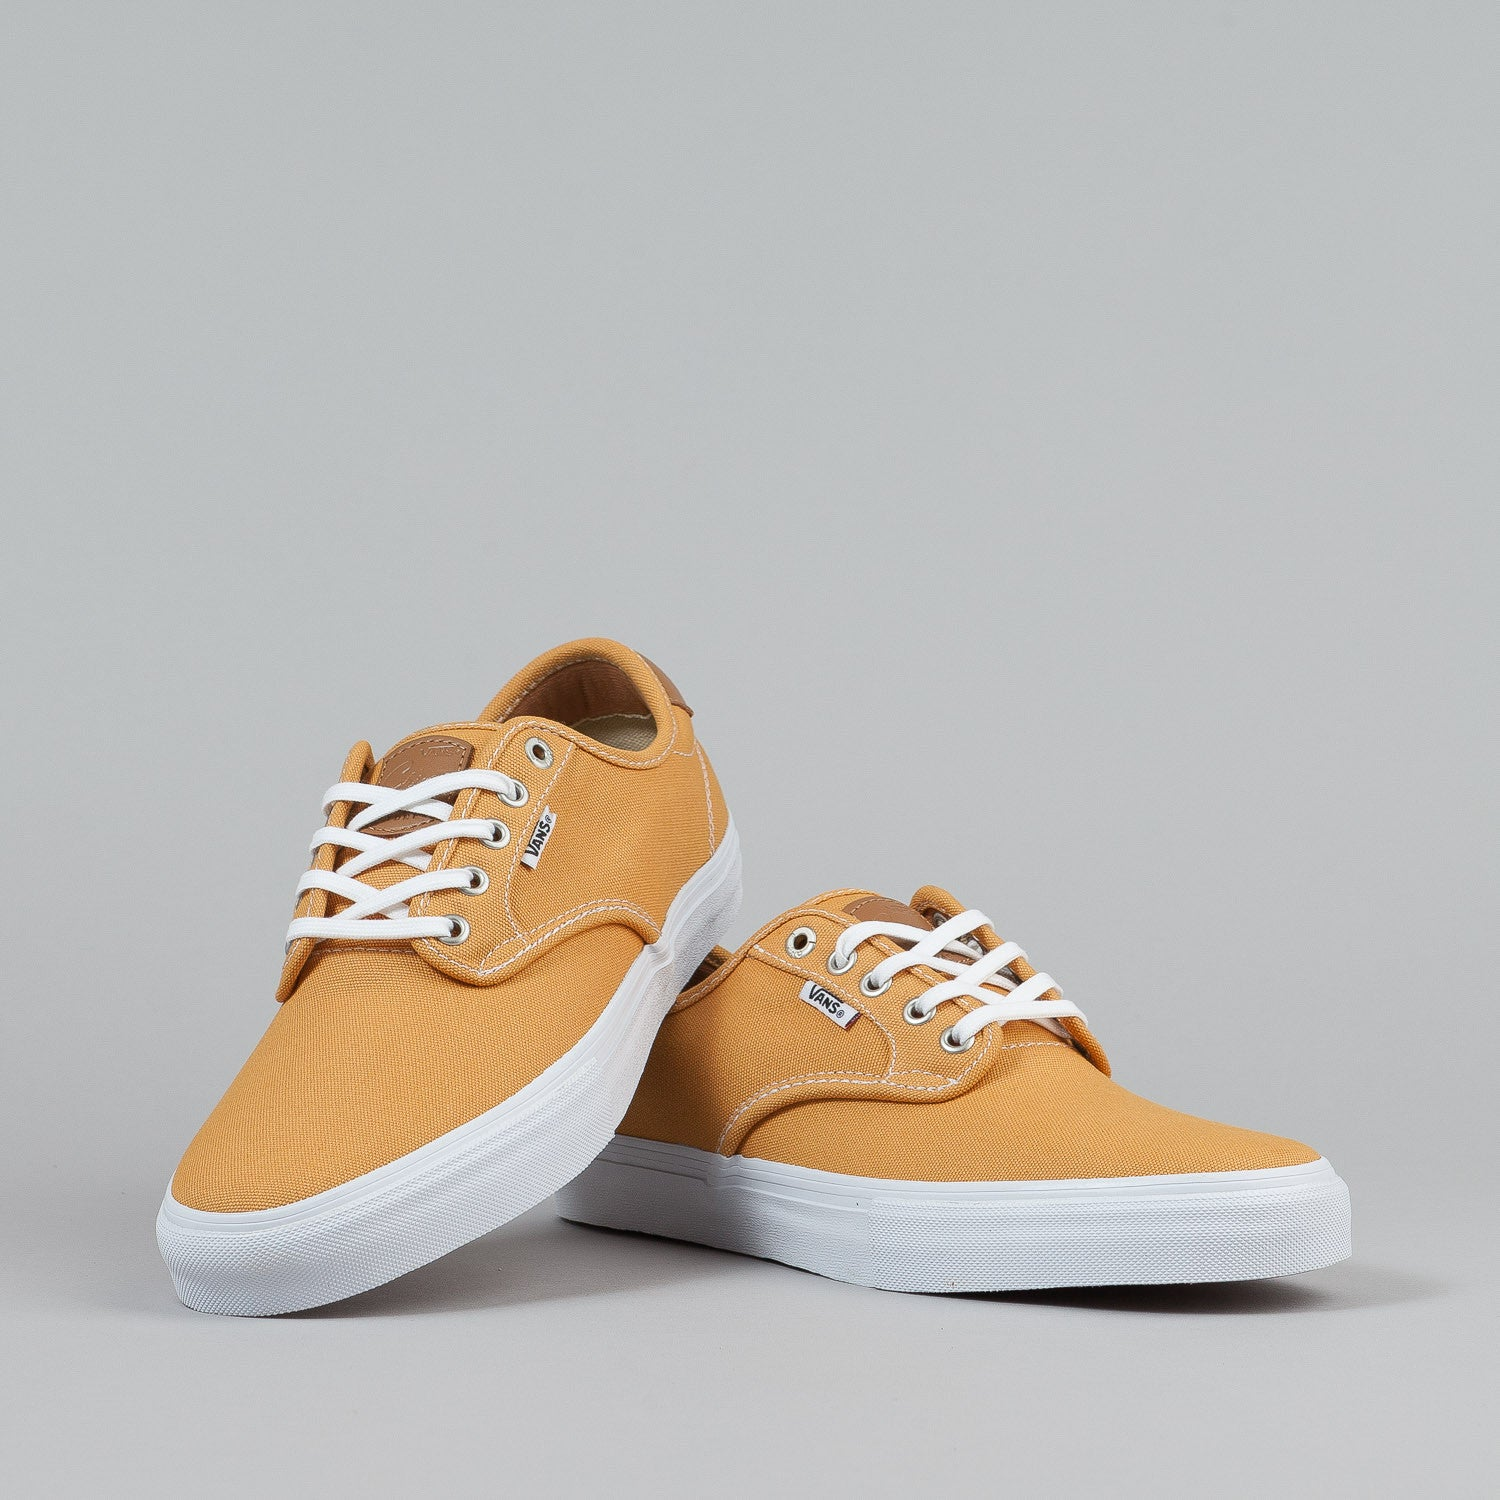 Vans Chima Ferguson Pro Shoes - Washed Canvas Gold